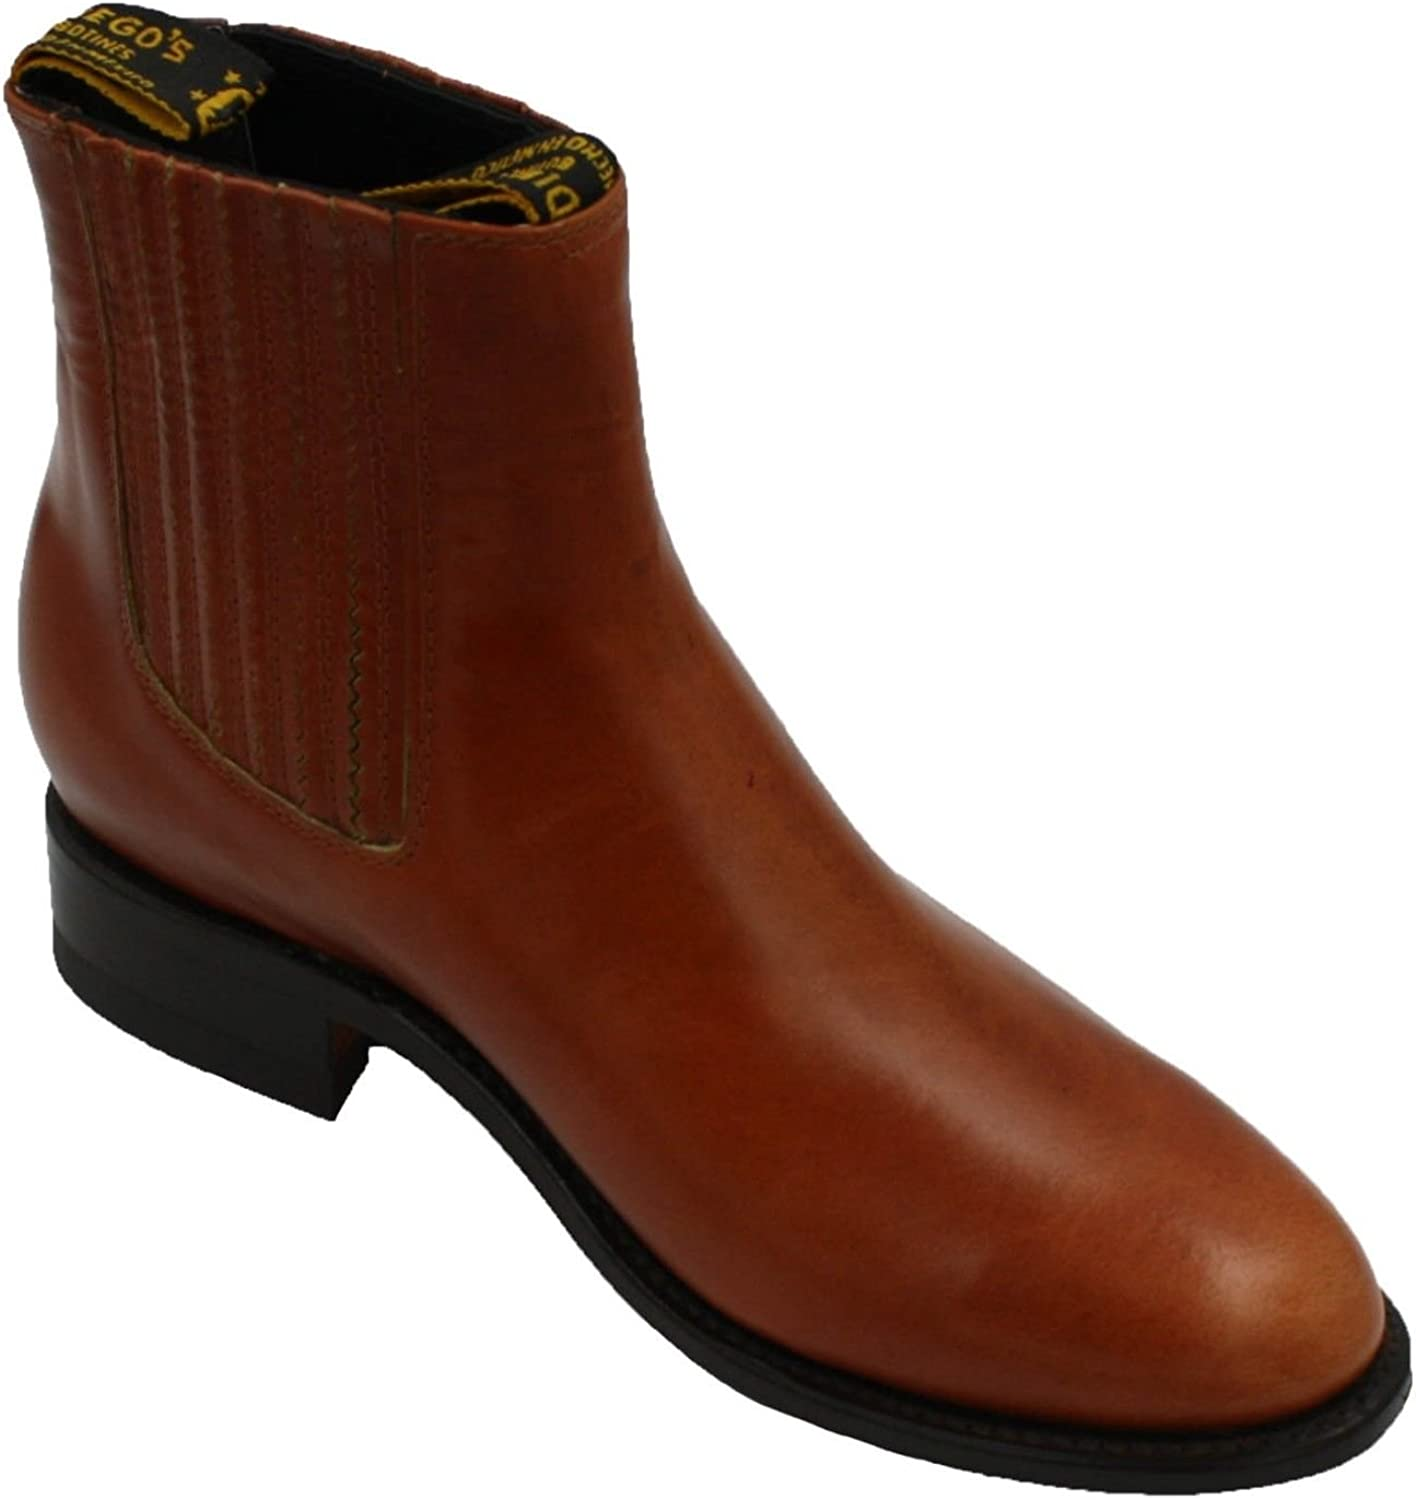 Dona Michi Mens Charro Botin Short Ankle Soft Cow Leather Boots